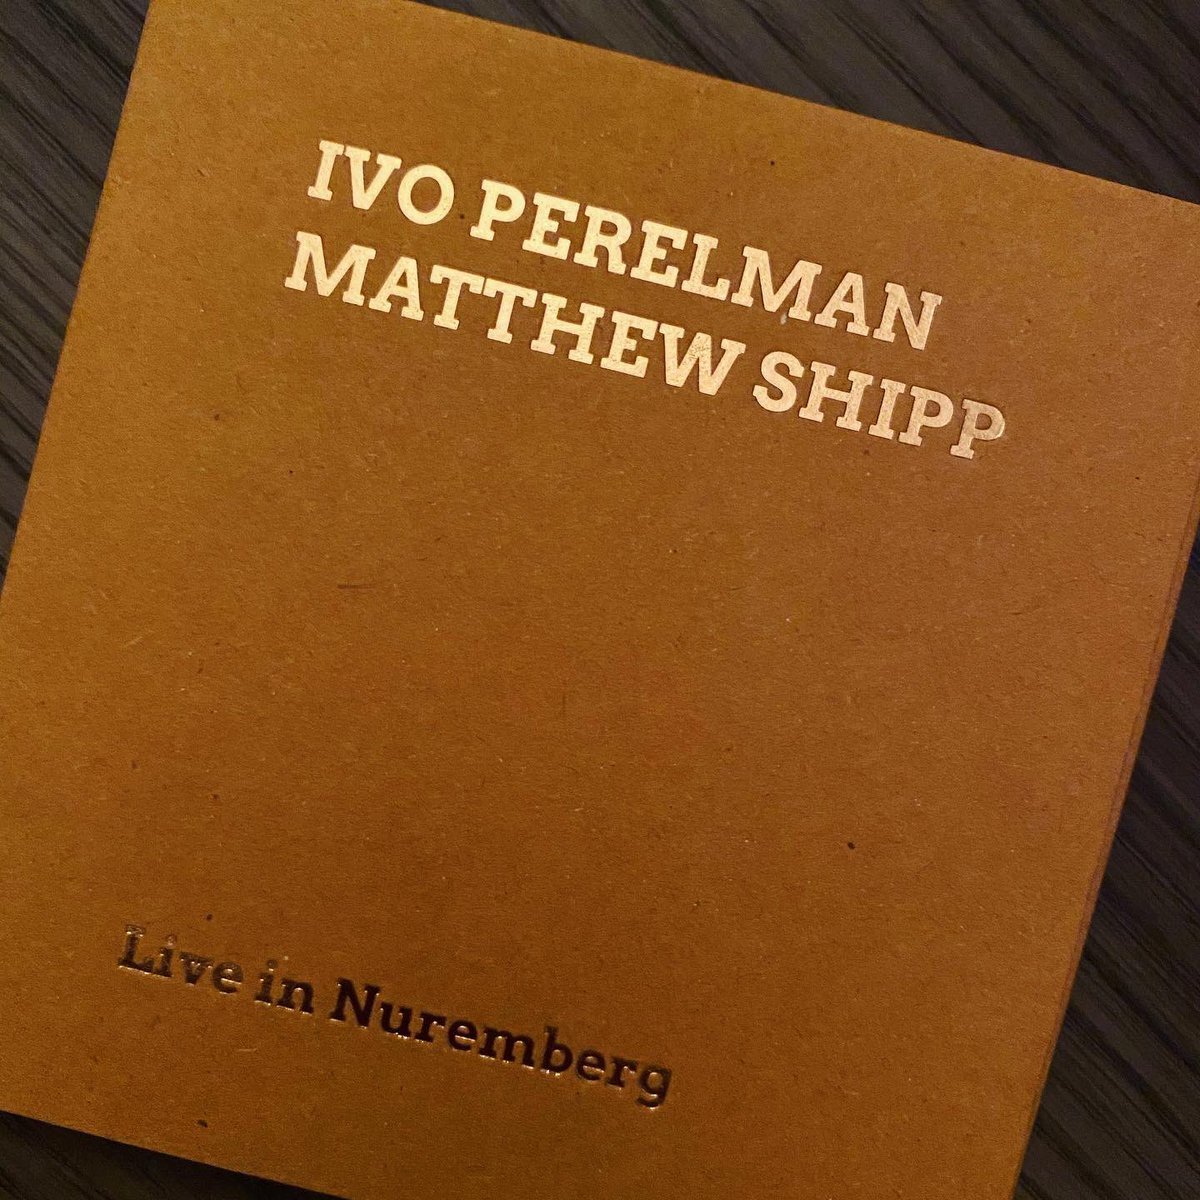 Ending the show with a new level of creativity: @ivoperelman & Matthew Shipp ~ Live in Nuremberg (SMP Records /Recorded at The Art of Improvisation Festival in 2019). #jazz #freeimprovisation  #jazz883  #looselyknitjazzpic.twitter.com/XpoKVO9YCw